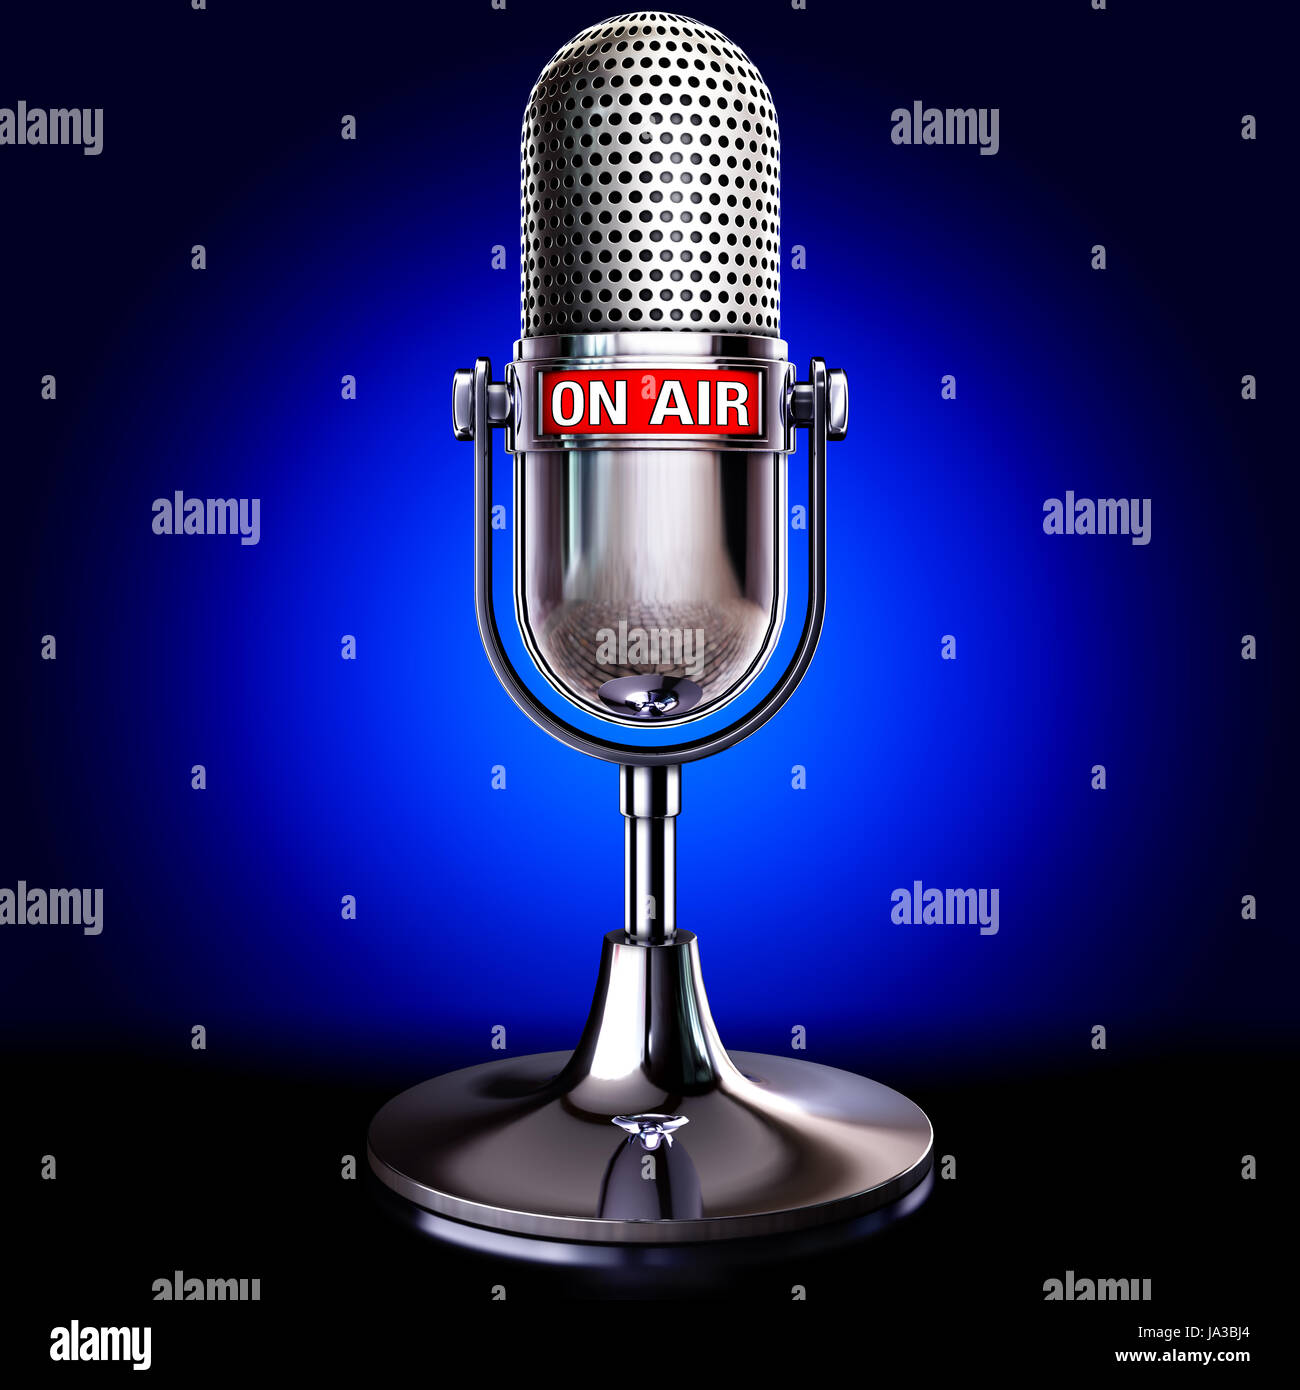 entertainment, music, studio, radio, microphone, shipment, broadcast, Stock Photo